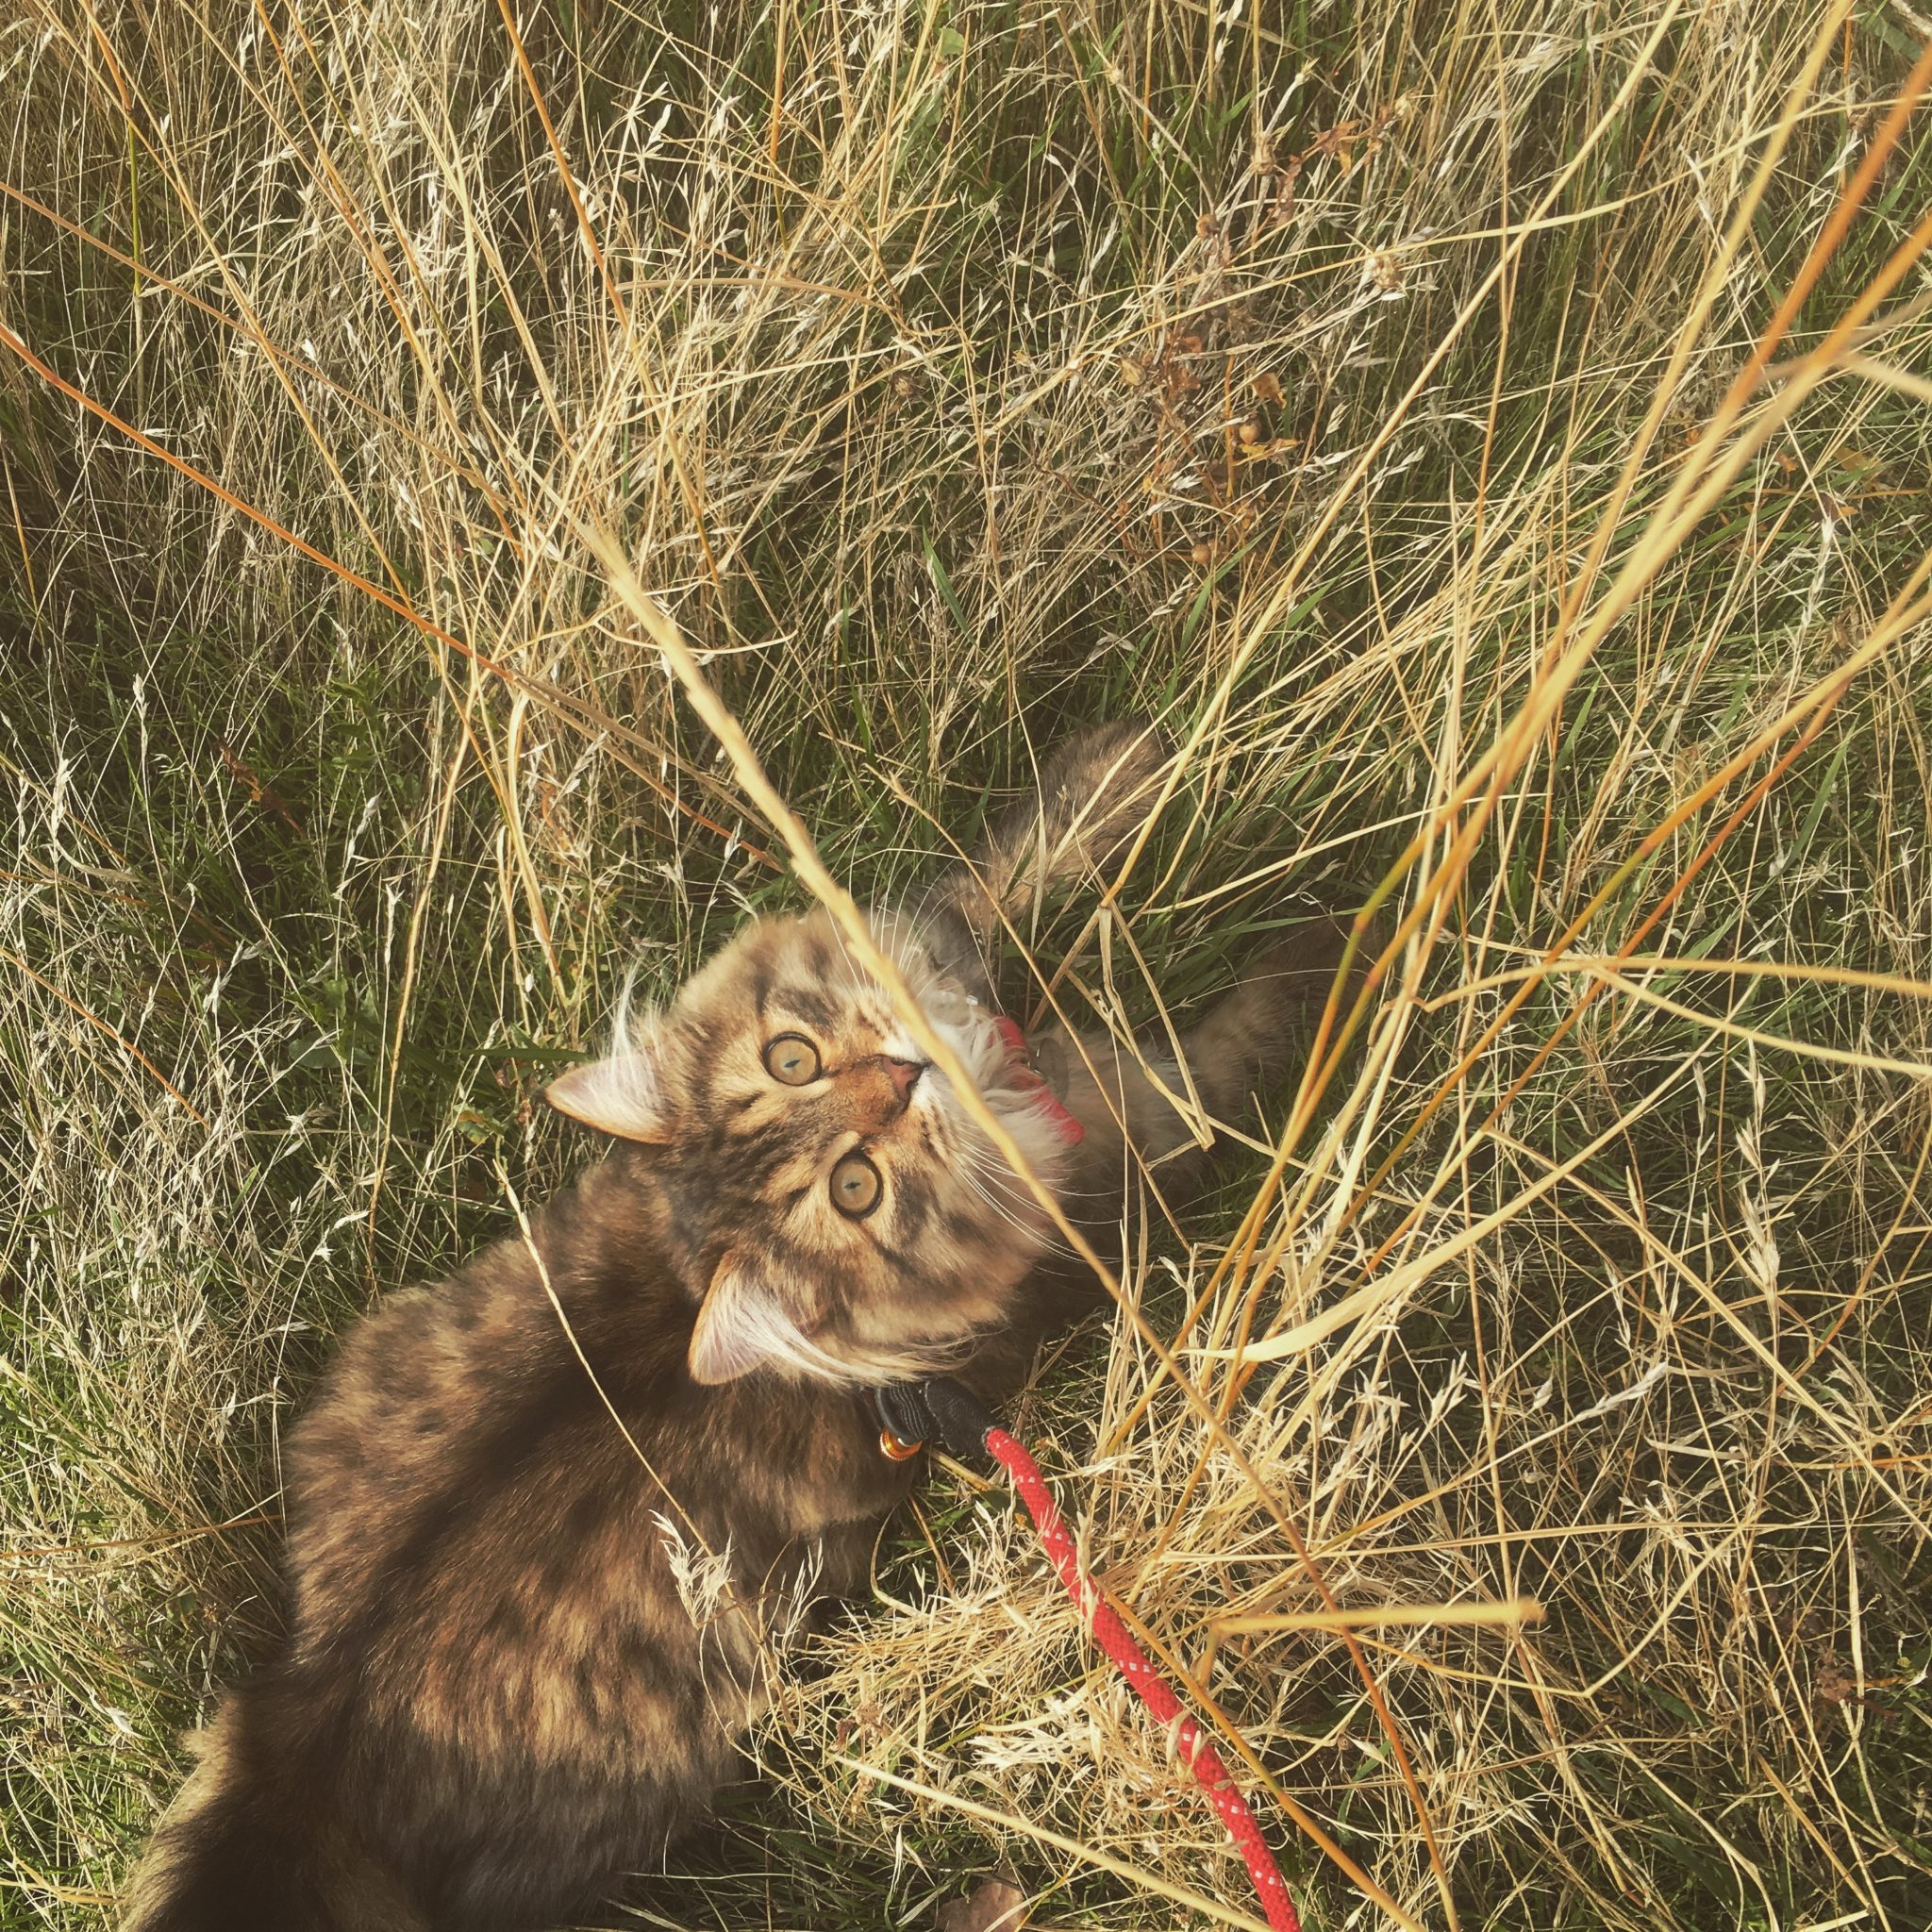 McKinley the cat in tall grass